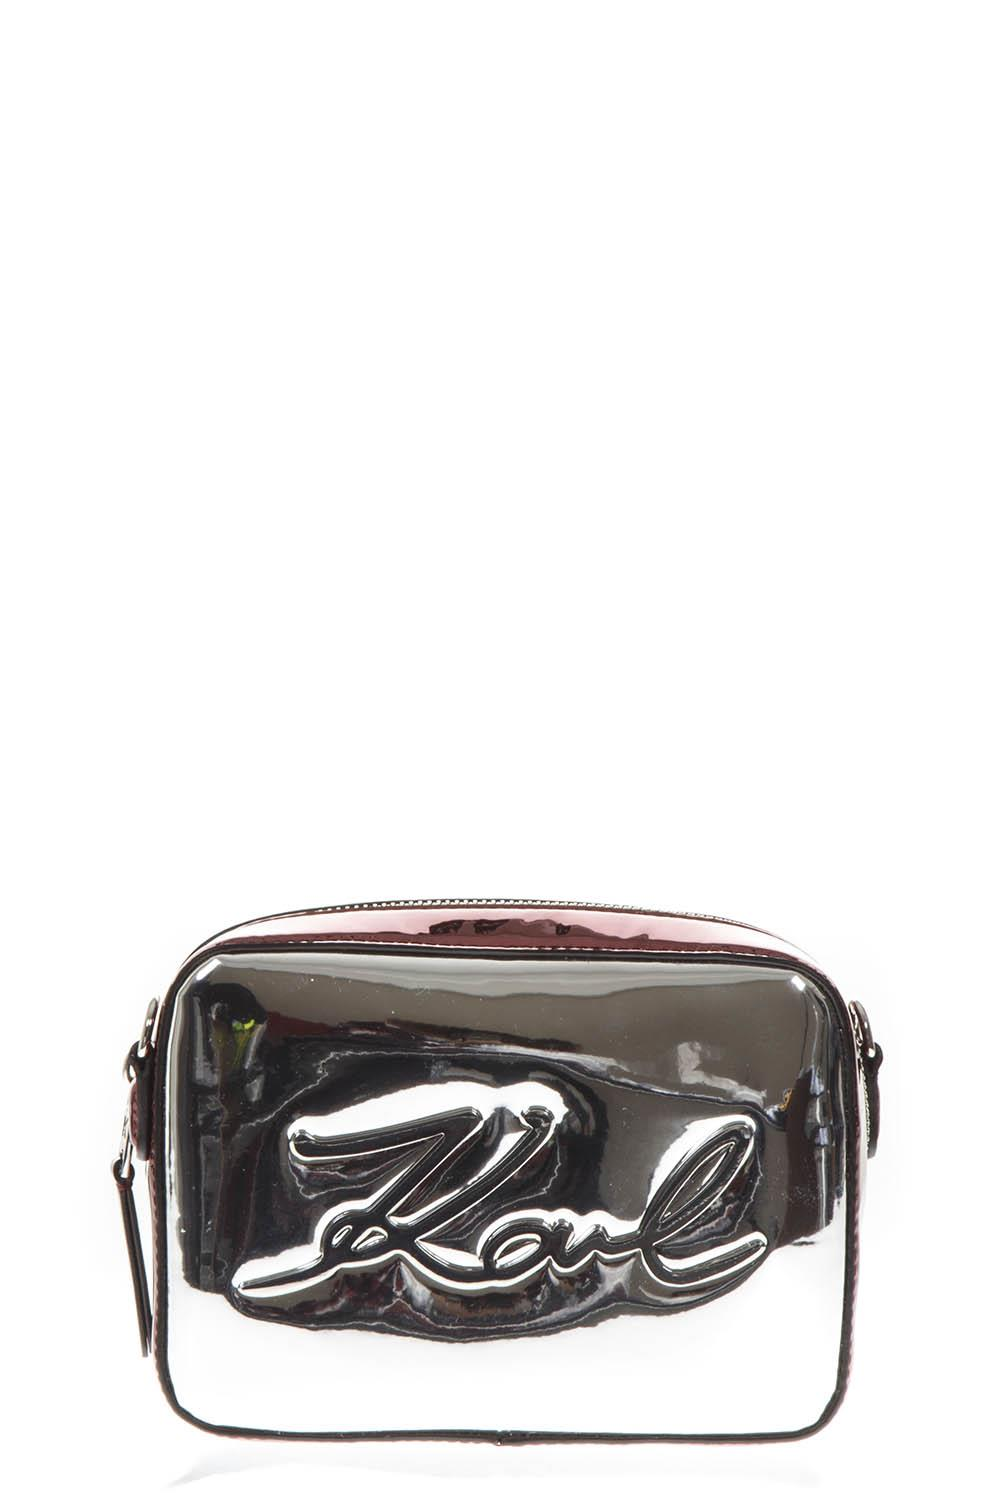 MIXED LAMINATED FABRIC LOGO SMALL BAG FW 2018 - KARL LAGERFELD - Boutique  Galiano c1b93ad6360c4